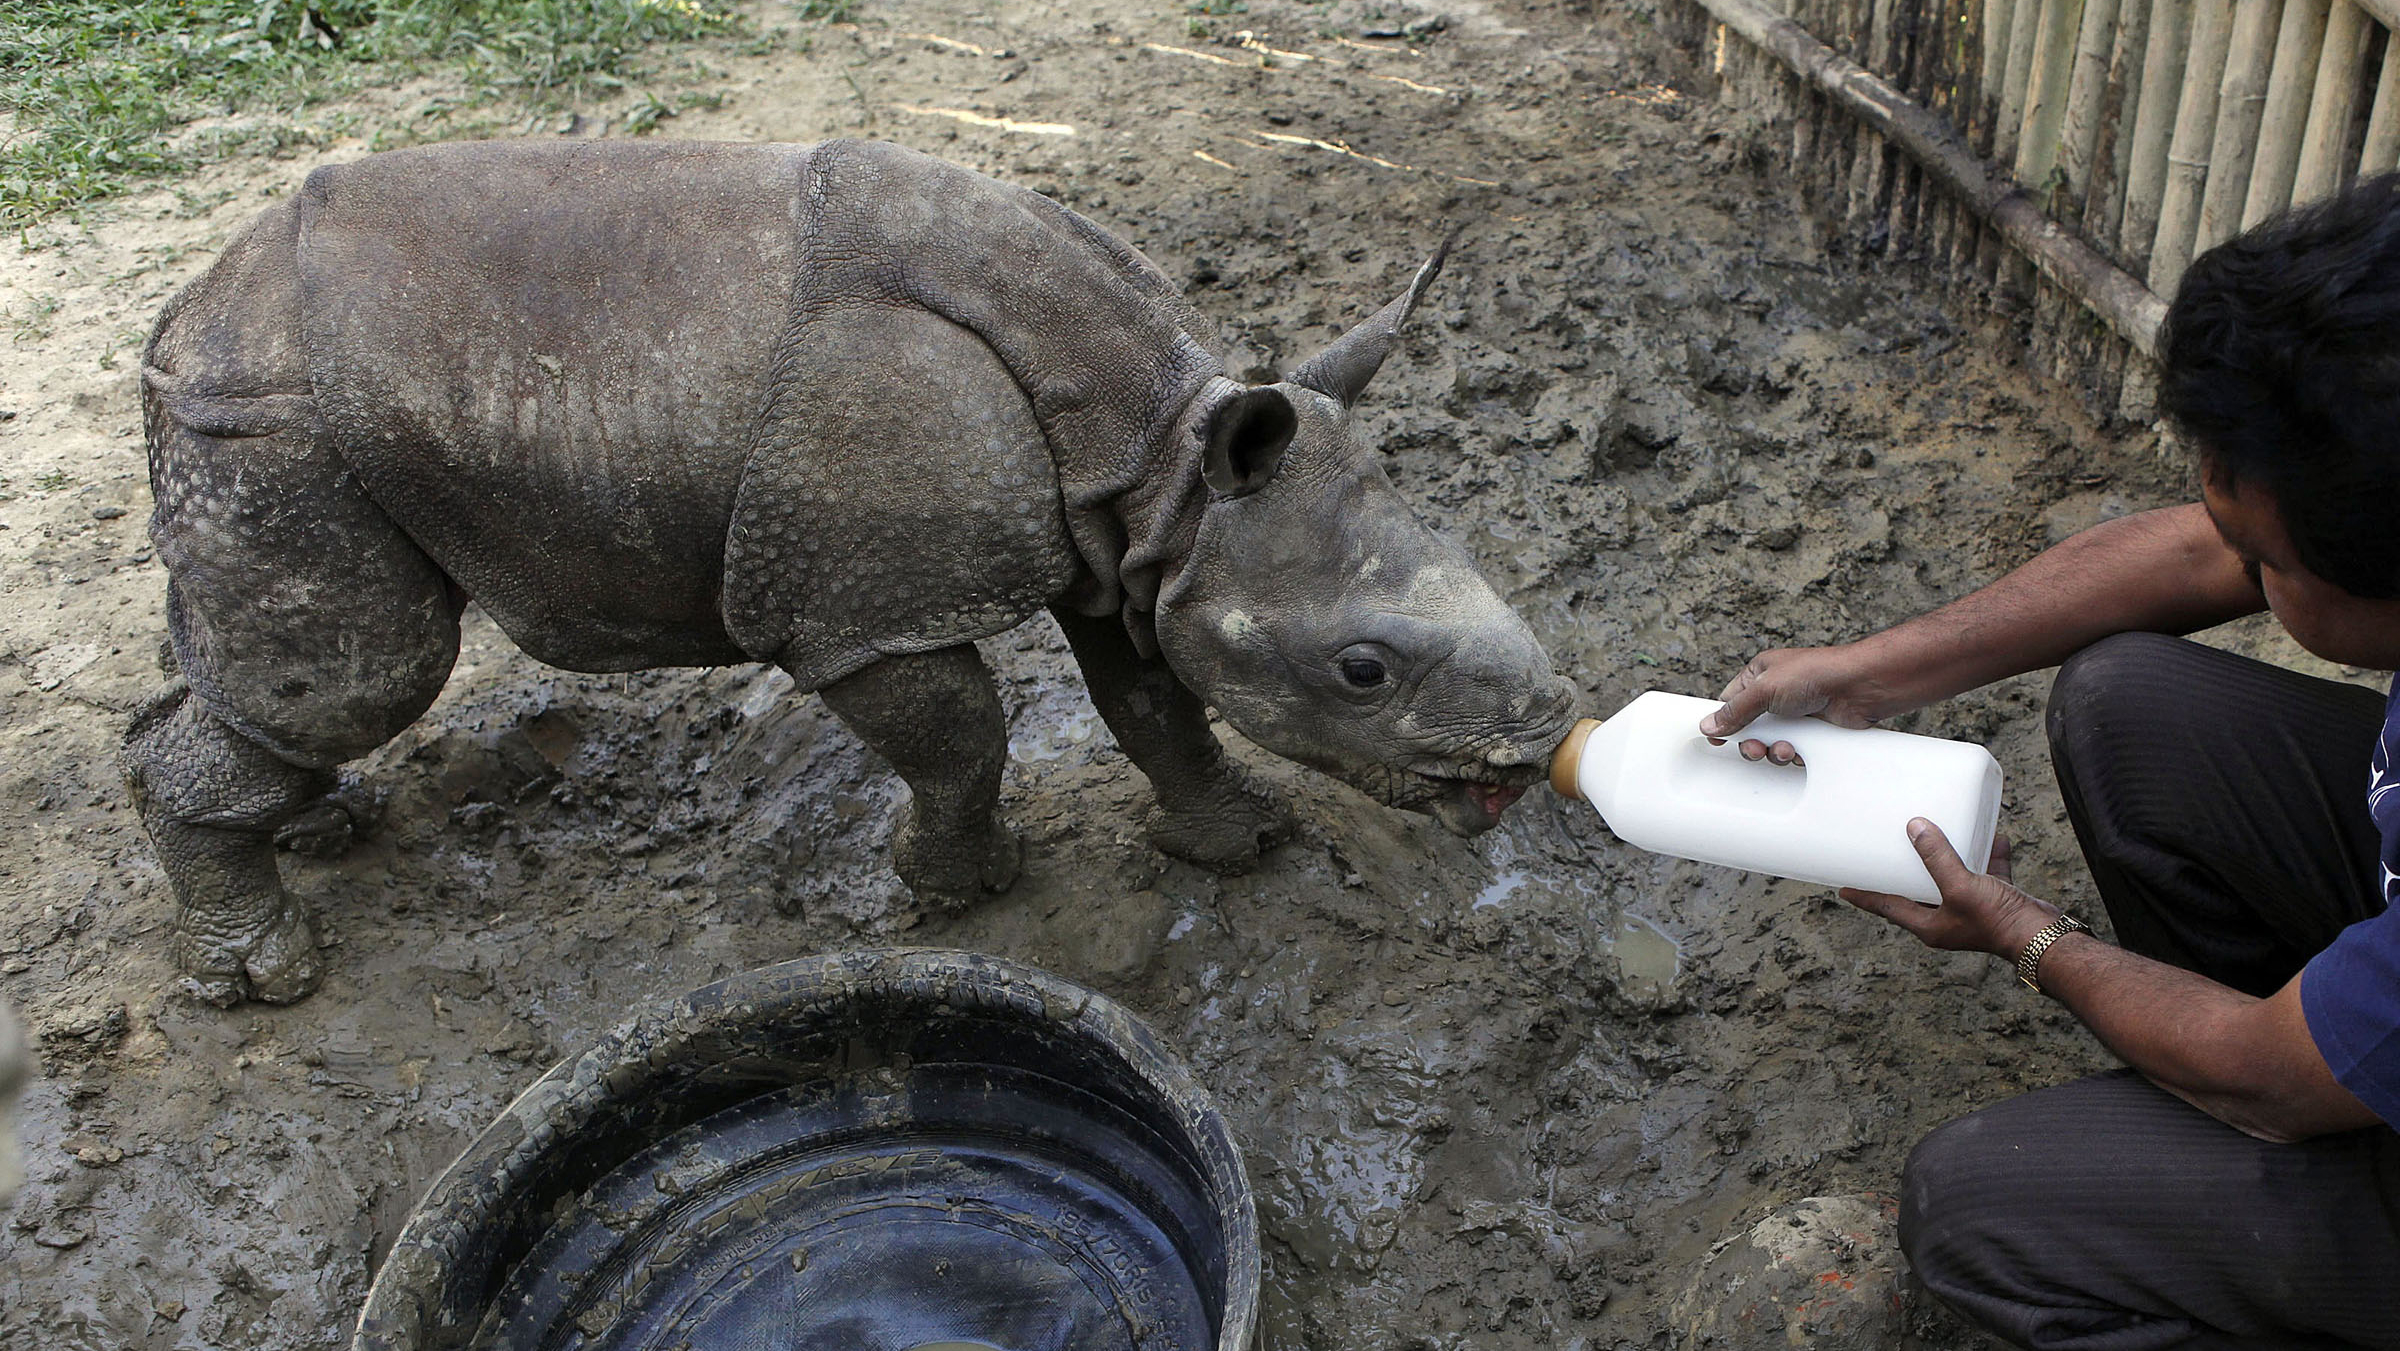 """In this Sunday, Dec. 2, 2012 photo, a park official feeds a two-and-half month old male orphan one-horned rhinoceros calf rescued during recent floods walks at a rehabilitation center inside the Kaziranga National Park, a wildlife reserve that provides refuge to more than 2,200 endangered Indian one-horned rhinoceros, in the northeastern Indian state of Assam. Even in this well protected reserve, where rangers follow shoot-to-kill orders, poachers are laying siege to """"Fortress Kaziranga,"""" attempting to sheer off the animals' horns to supply a surge in demand for purported medicine in China that's pricier than gold. A number of guards have been killed along with 108 poachers since 1985 while 507 rhino have perished by gunfire, electrocution or spiked pits set by the poachers, according to the park. (AP Photo/Anupam Nath"""